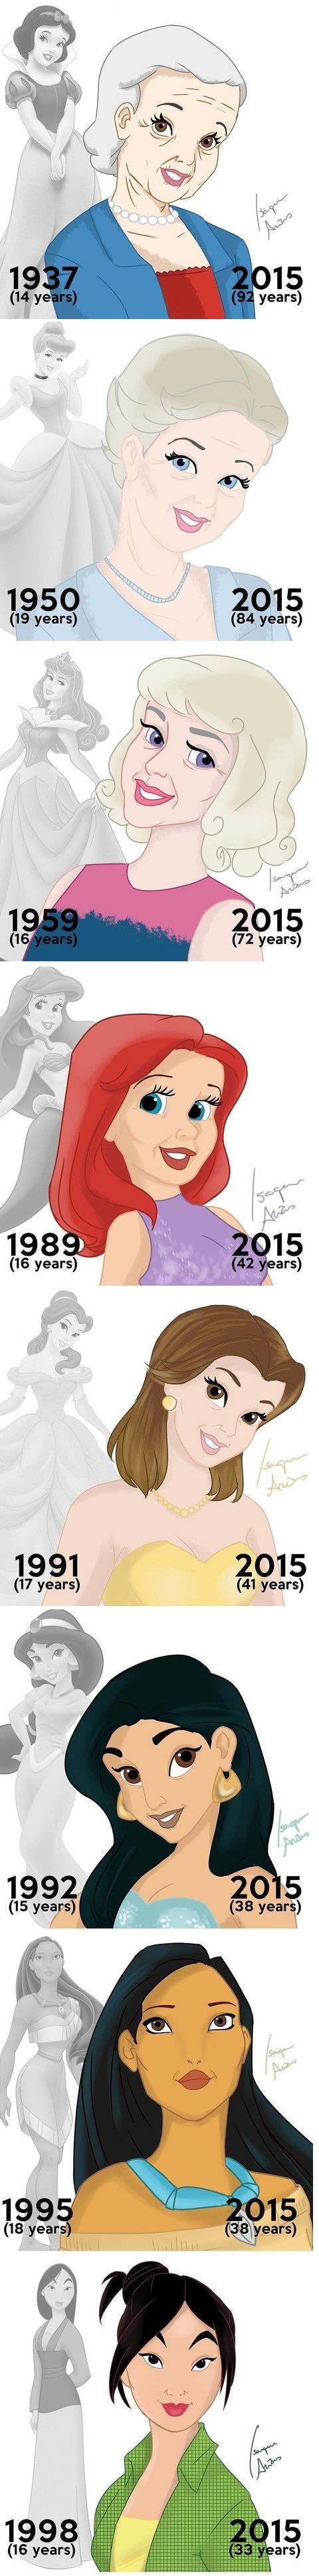 These are all the cartoon Disney princesses and how they would've aged. Heehee. Mulan doesn't look that different.